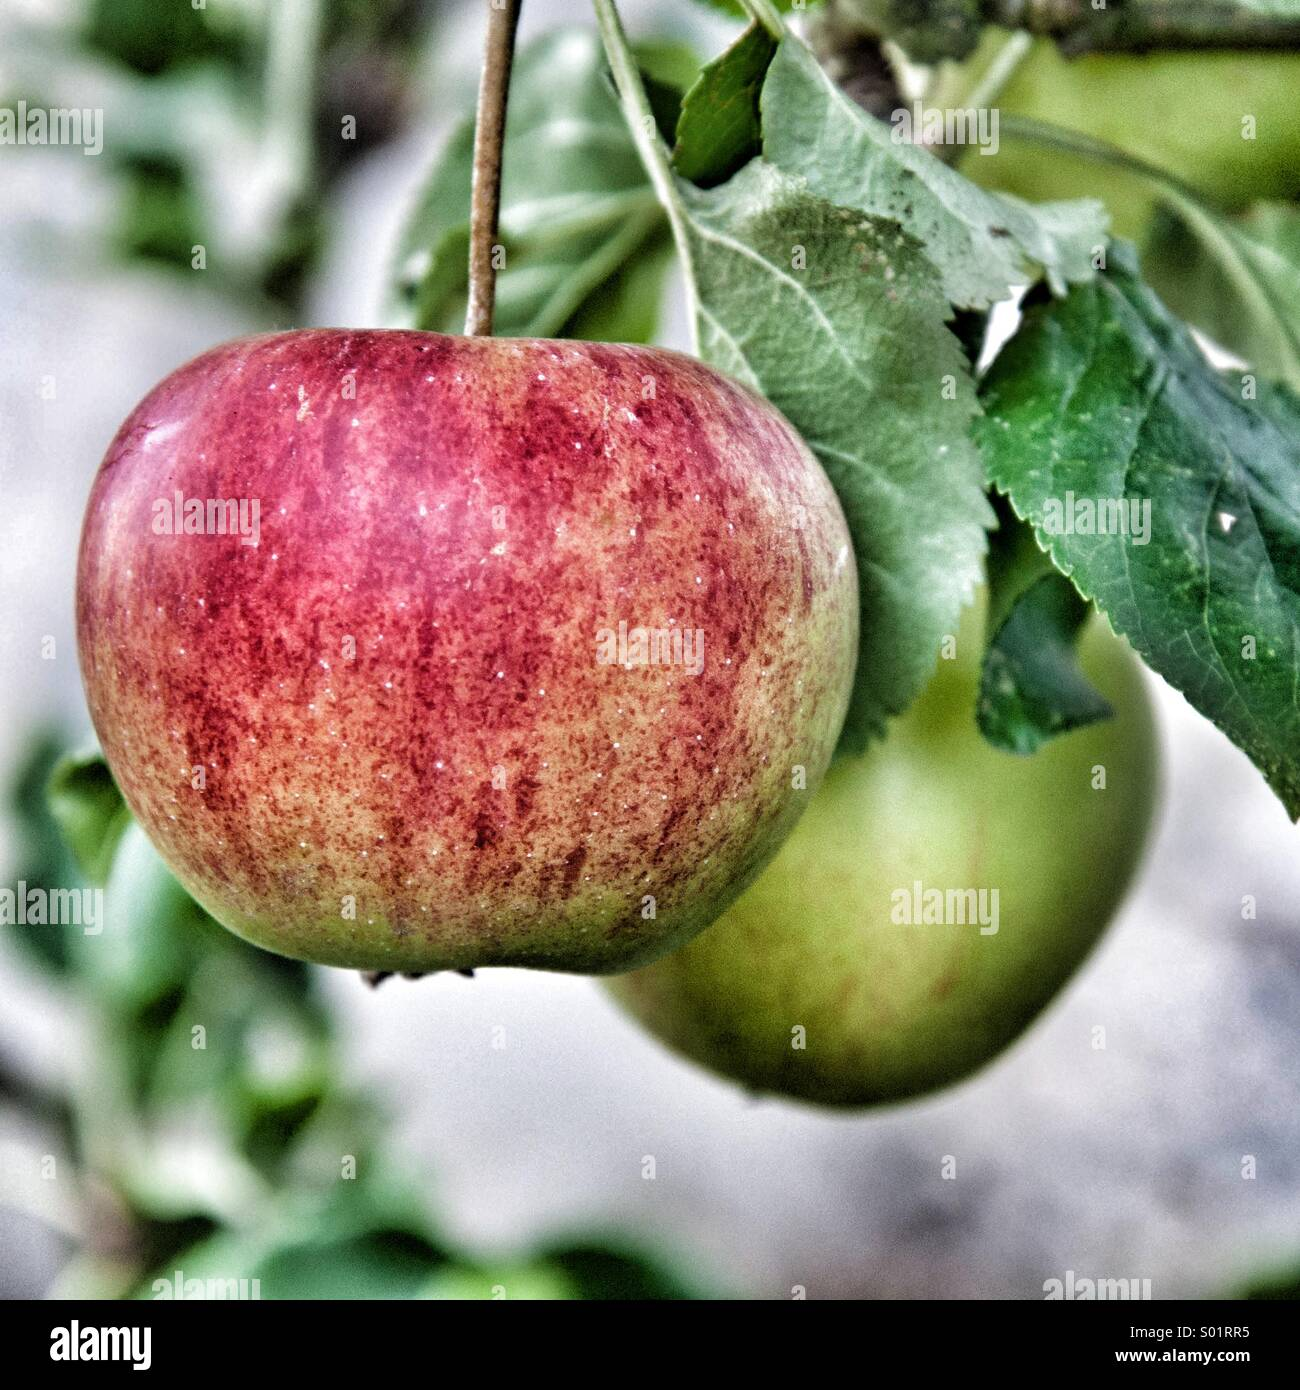 Ripe apples hanging on the tree - Stock Image